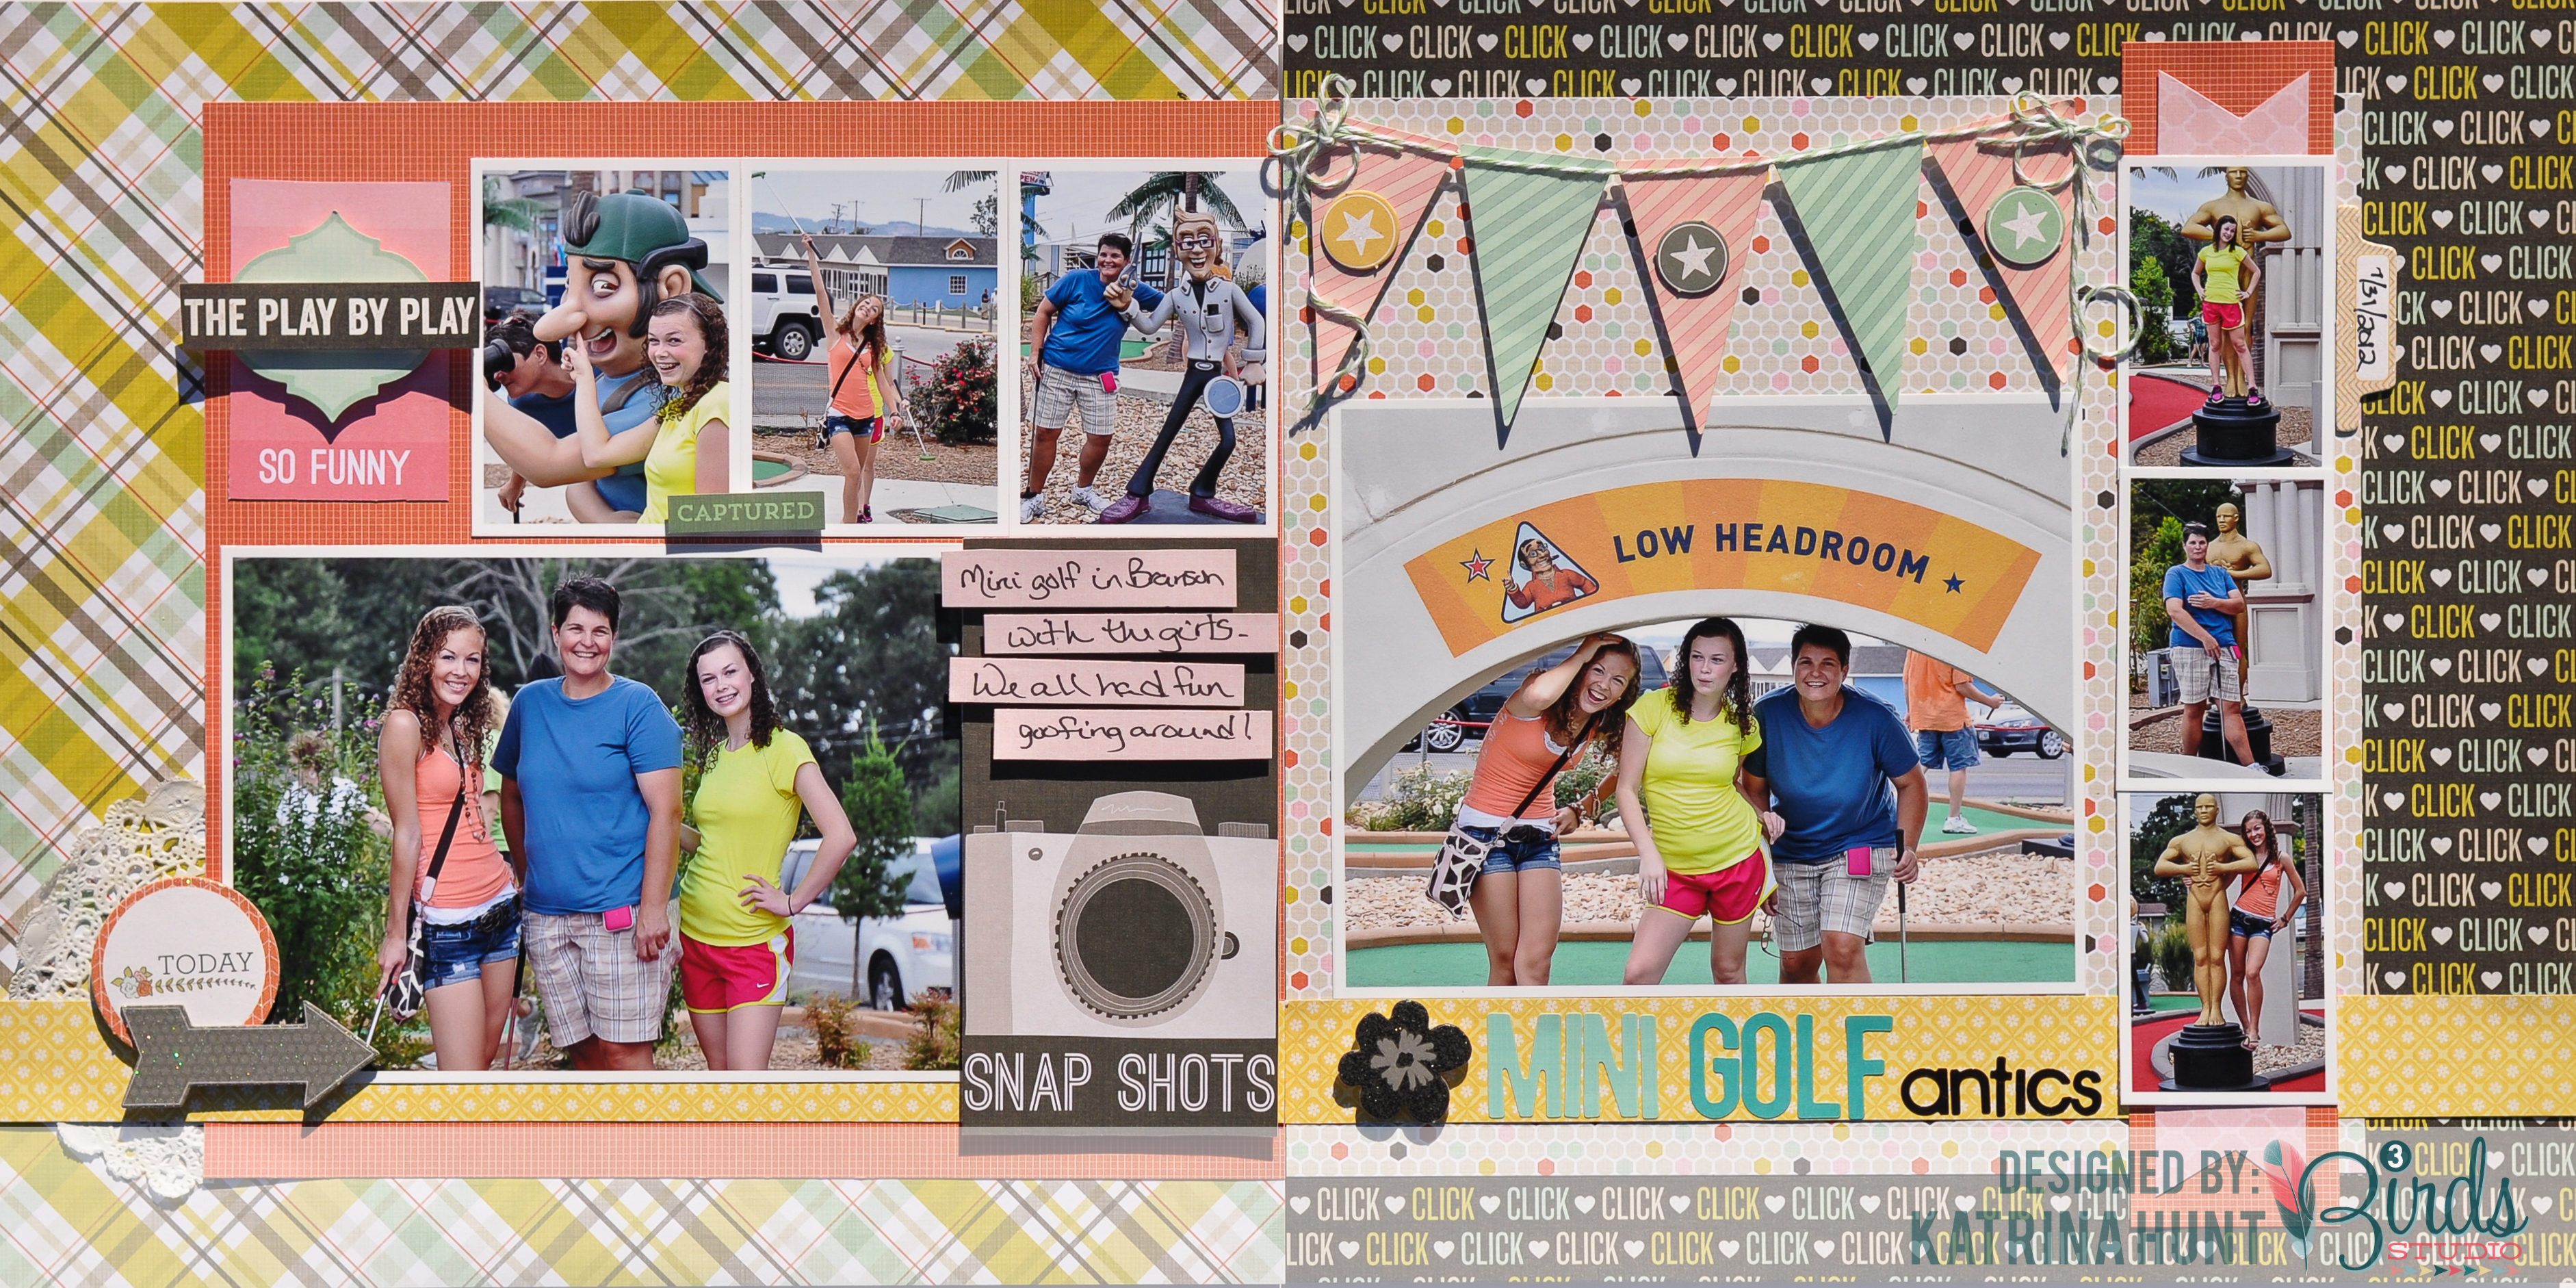 How to design scrapbook layouts - Mini Golf Scrapbook Page By Katrina Hunt For 3 Birds Design Using The September Sketch